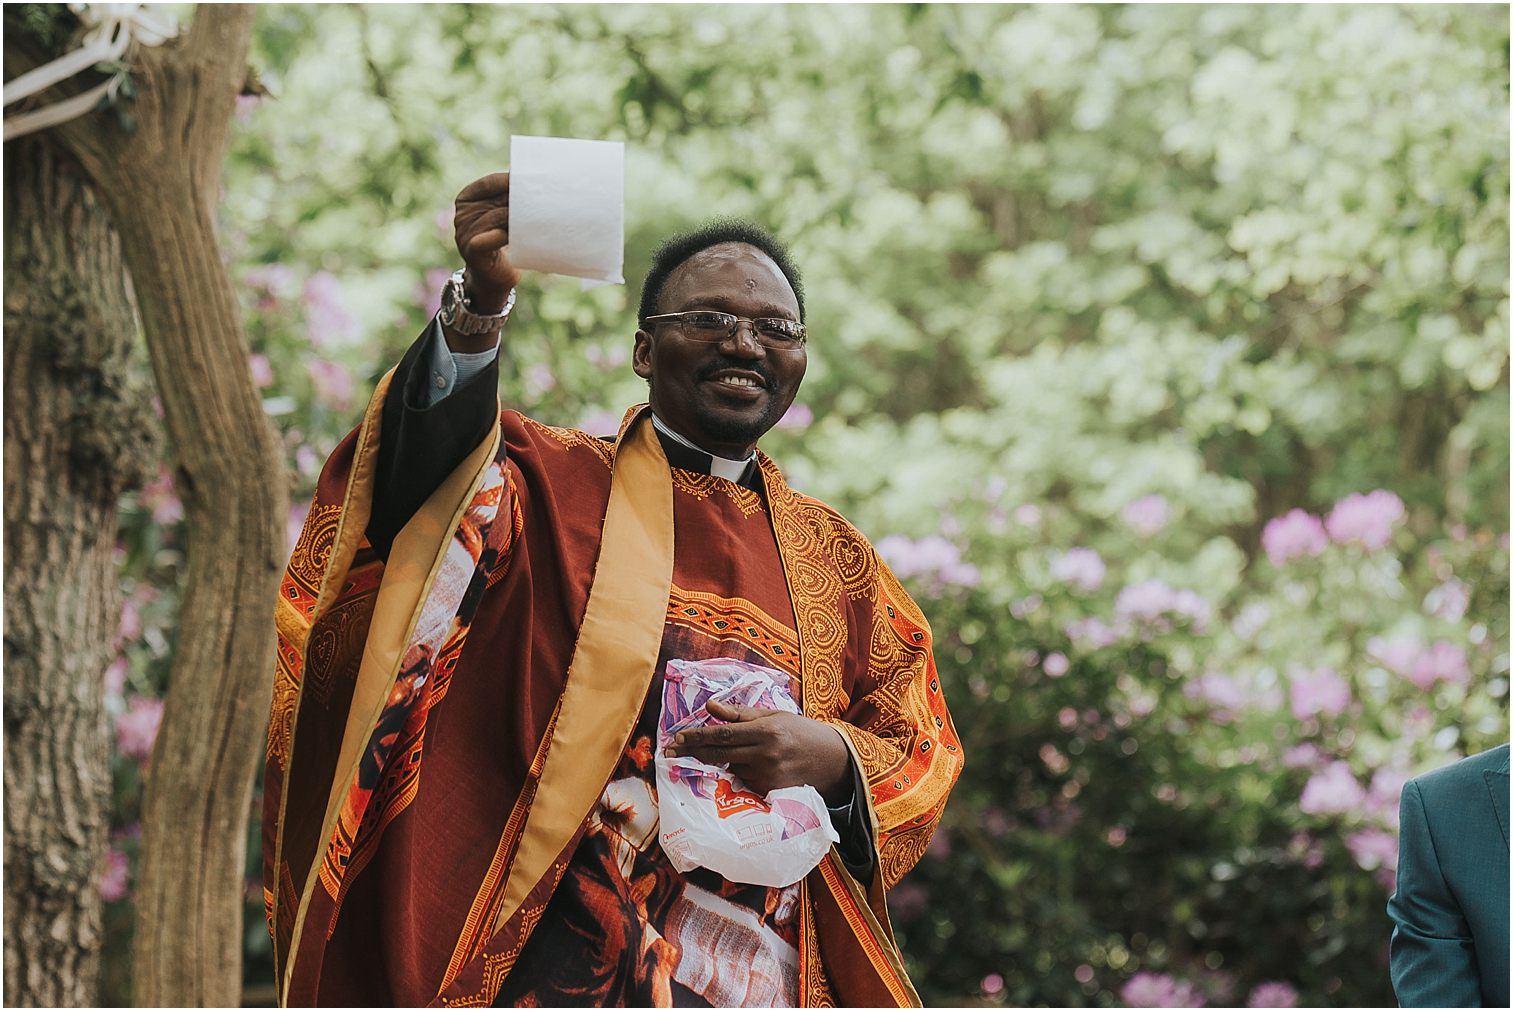 Vicar holding a roll of toilet paper during a wedding ceremony